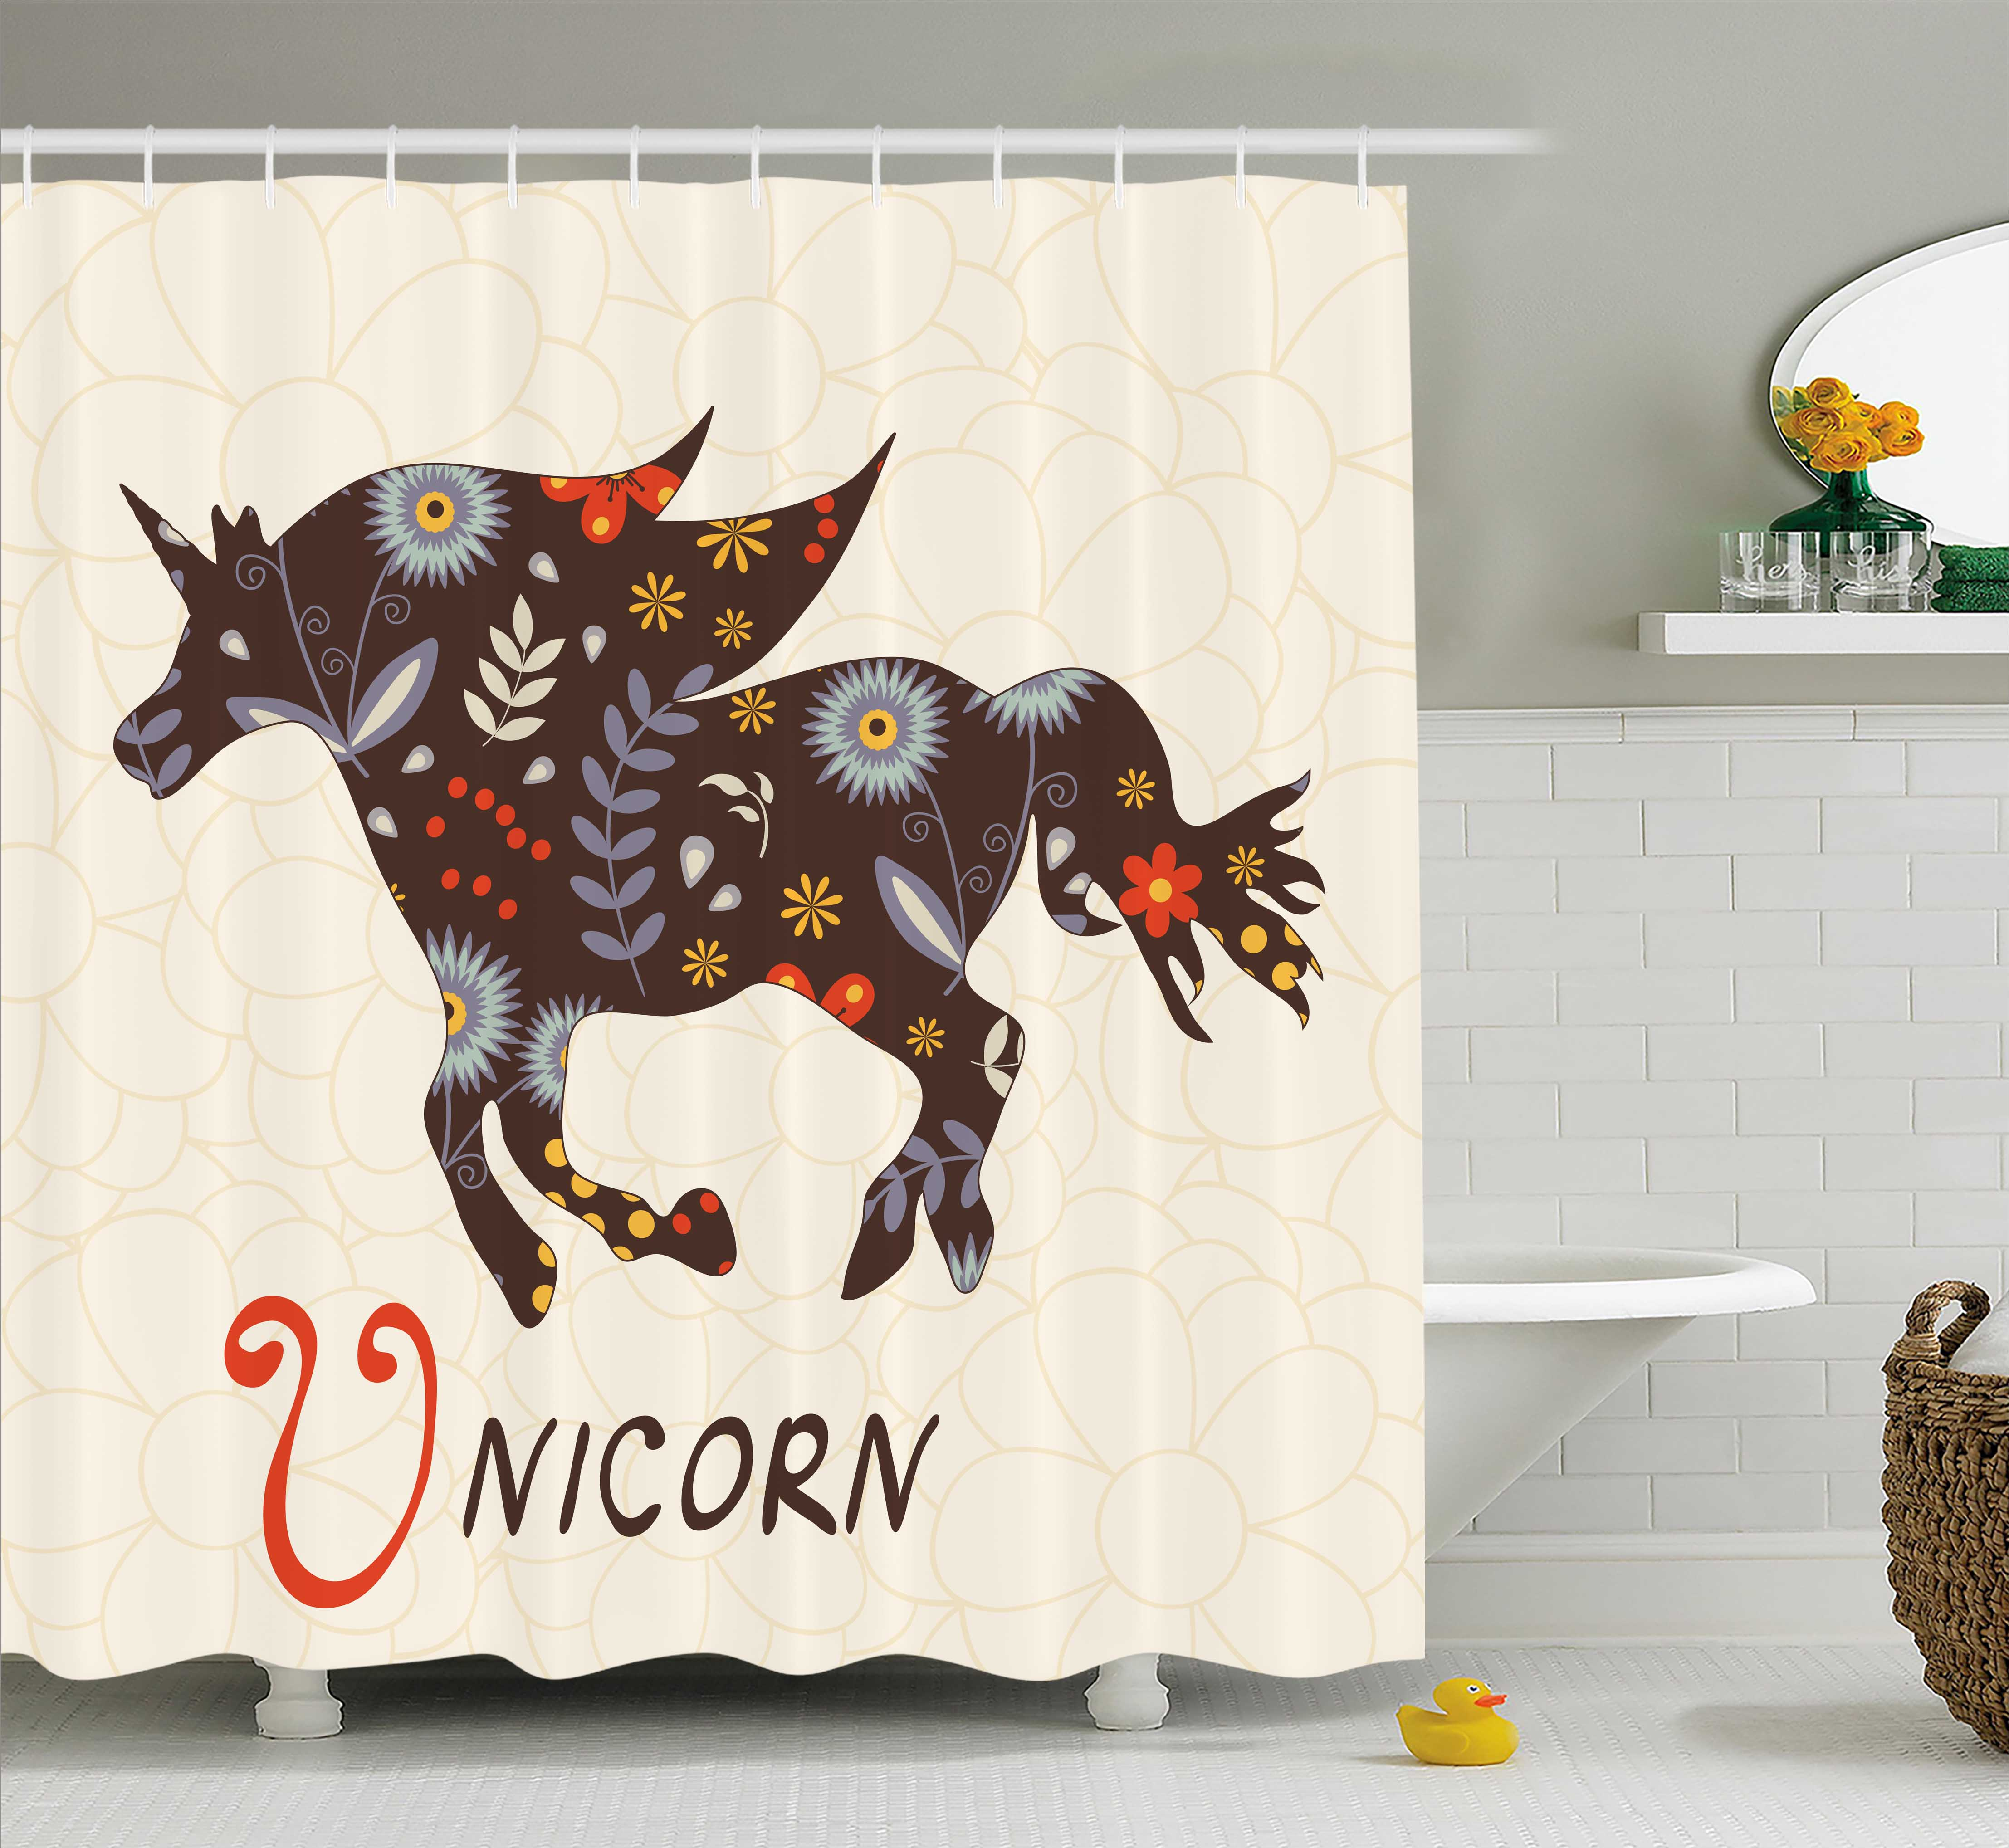 Unicorn Home and Kids Decor Shower Curtain, Silhouette Ma...